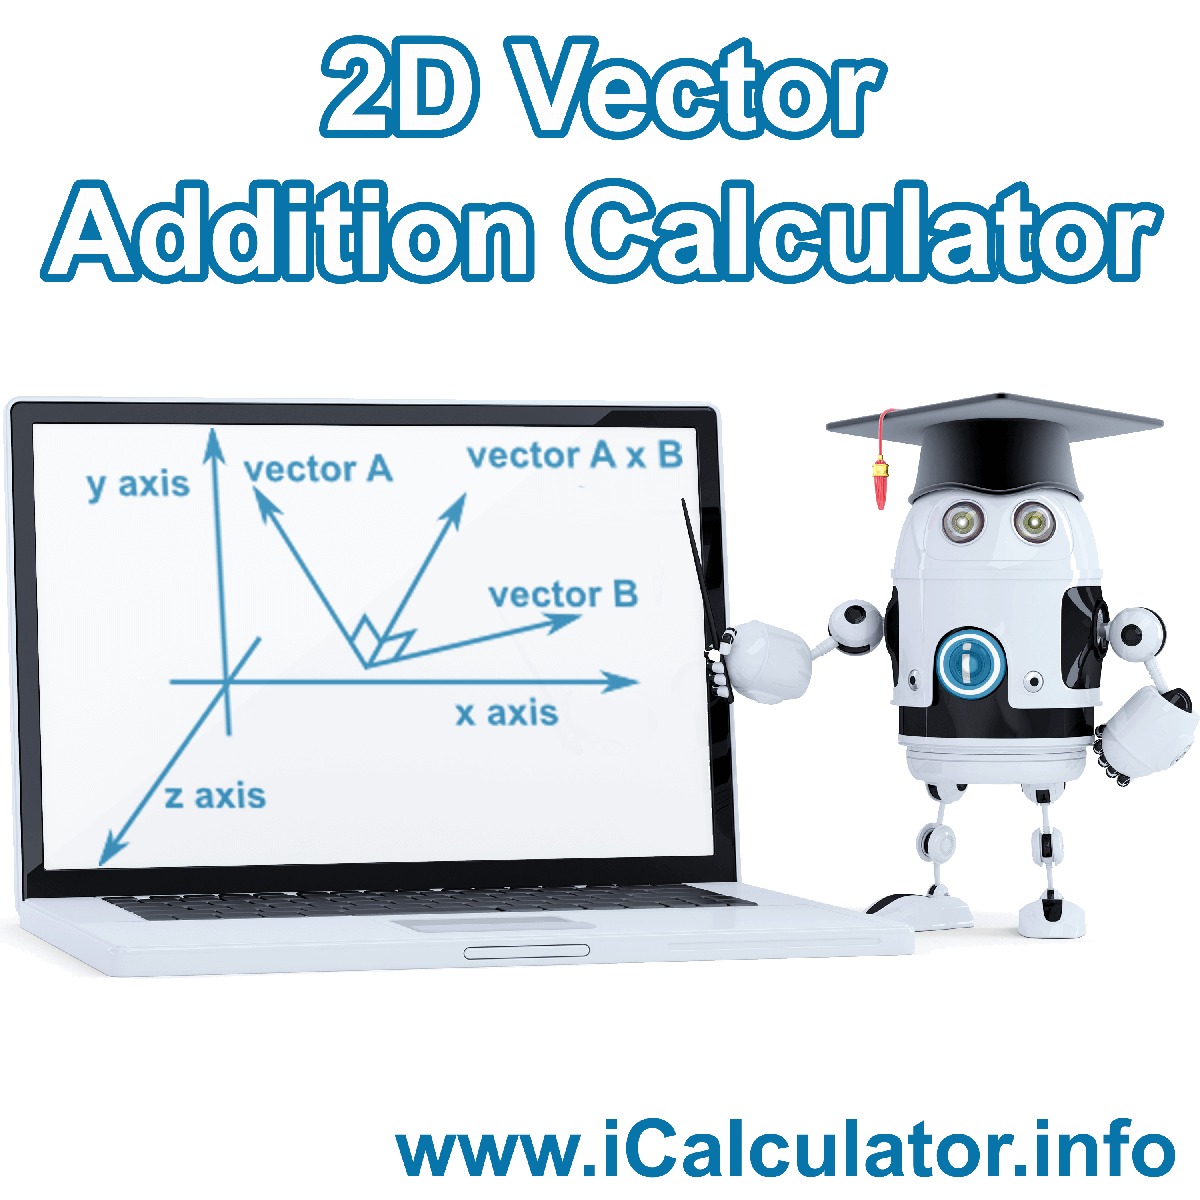 2D Vector Addition Calculator. This image shows 2D Vector Addition with associated calculations used by the 2D Vector Addition Calculator